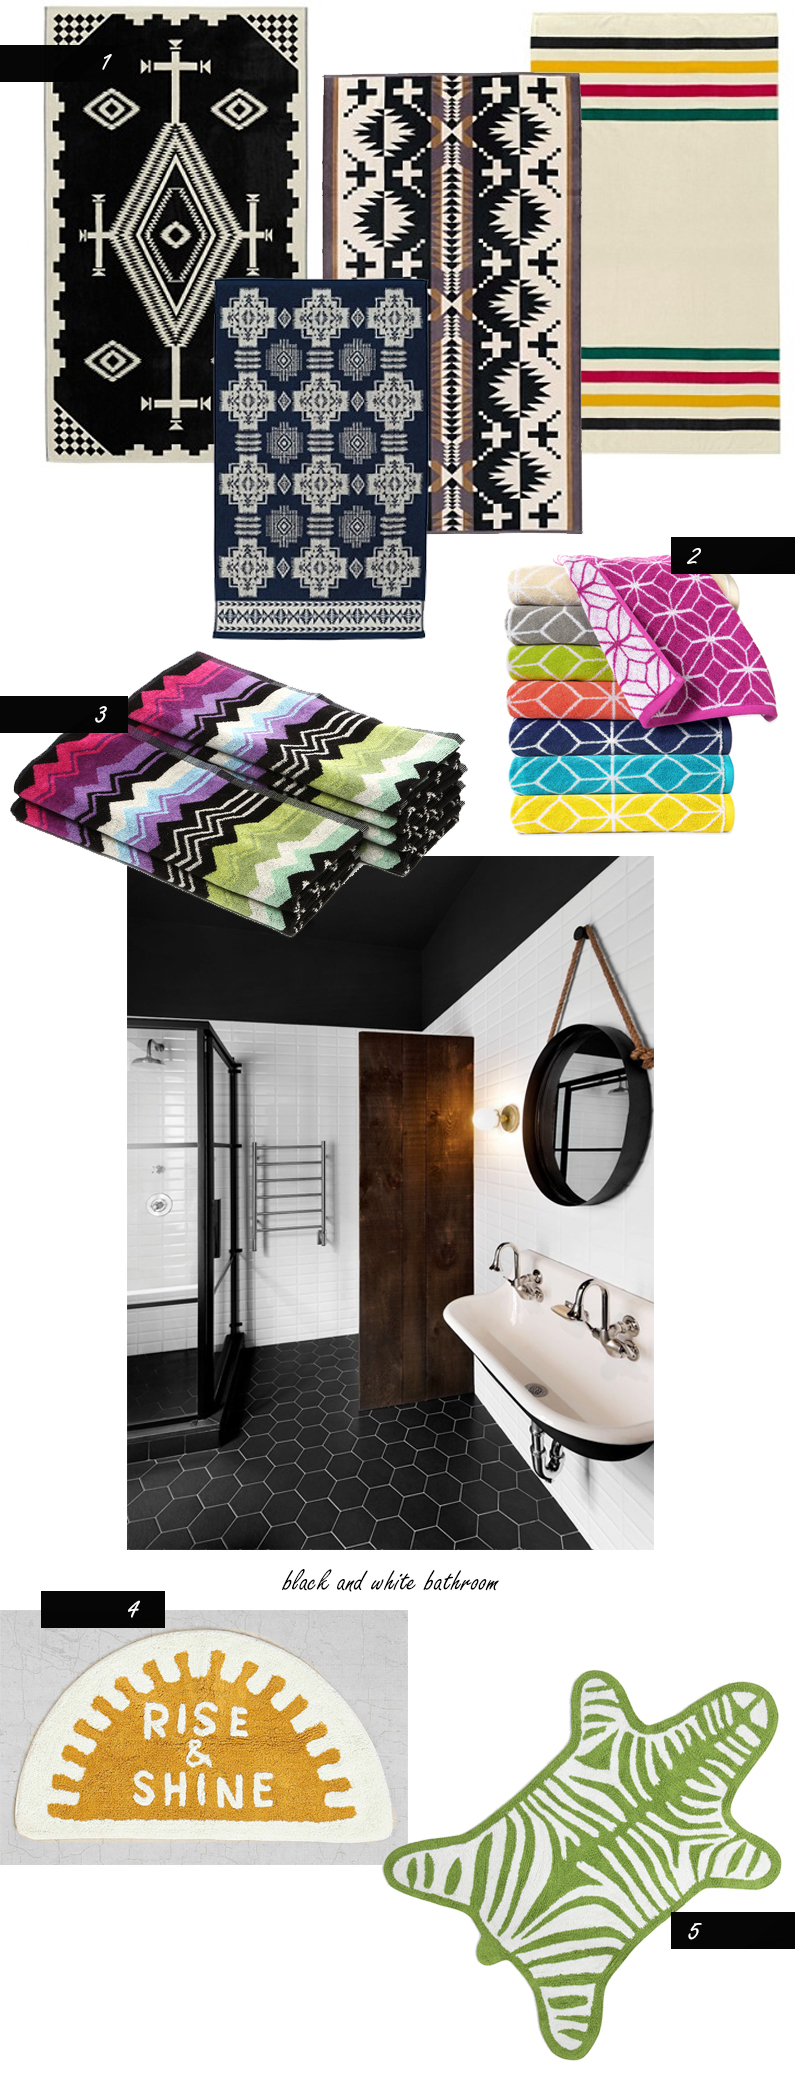 Black and White bathroom   1)  Pendleton towels  2)  Trina Turk towels  3)  Missoni towels  4)  UO bath mat  5)  Jonathan Adler bath mat